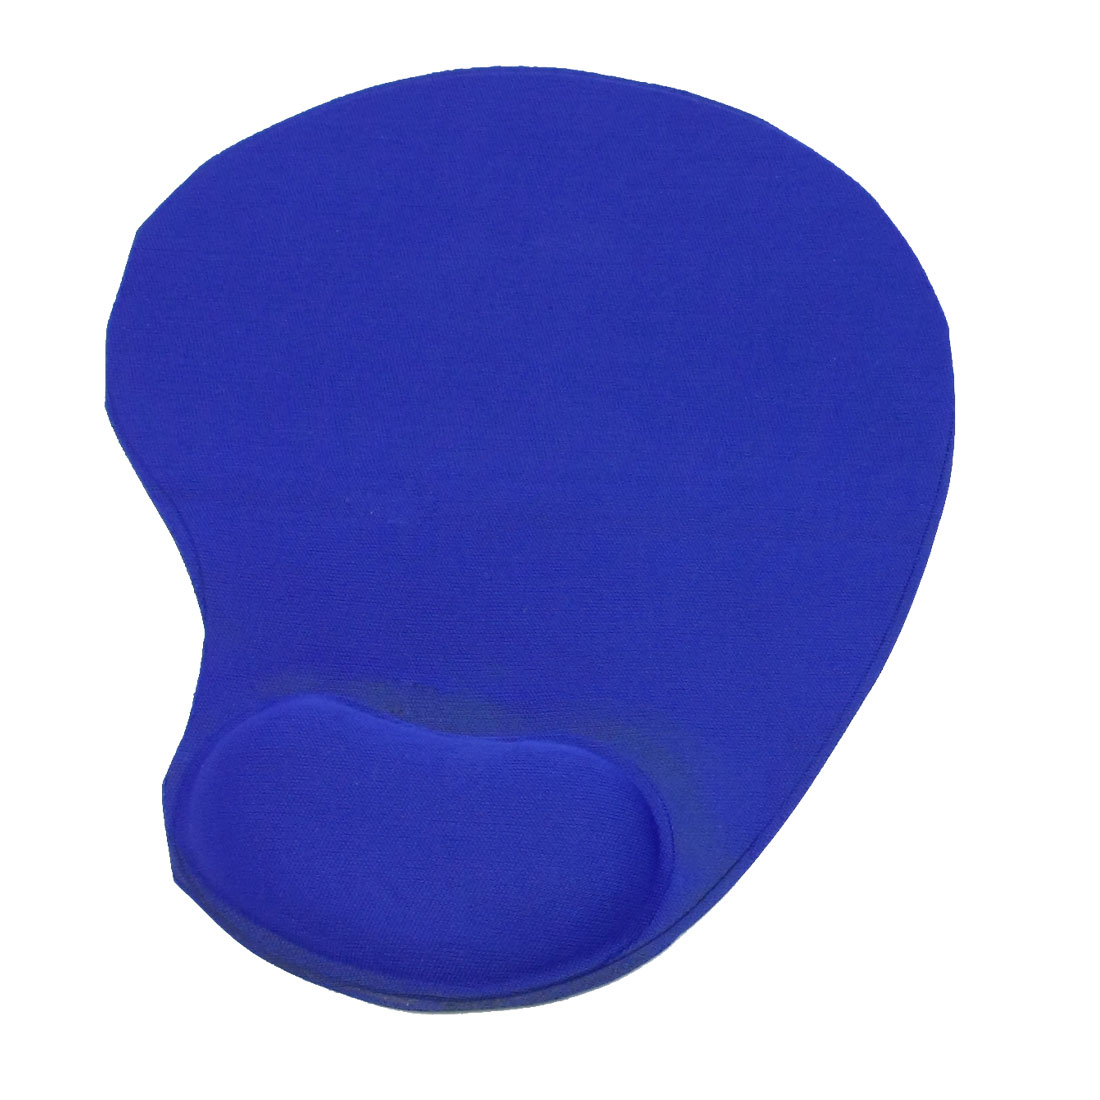 Black Blue Polyester Terylene Wrist Rest Support Laptop Computer Mouse Pad